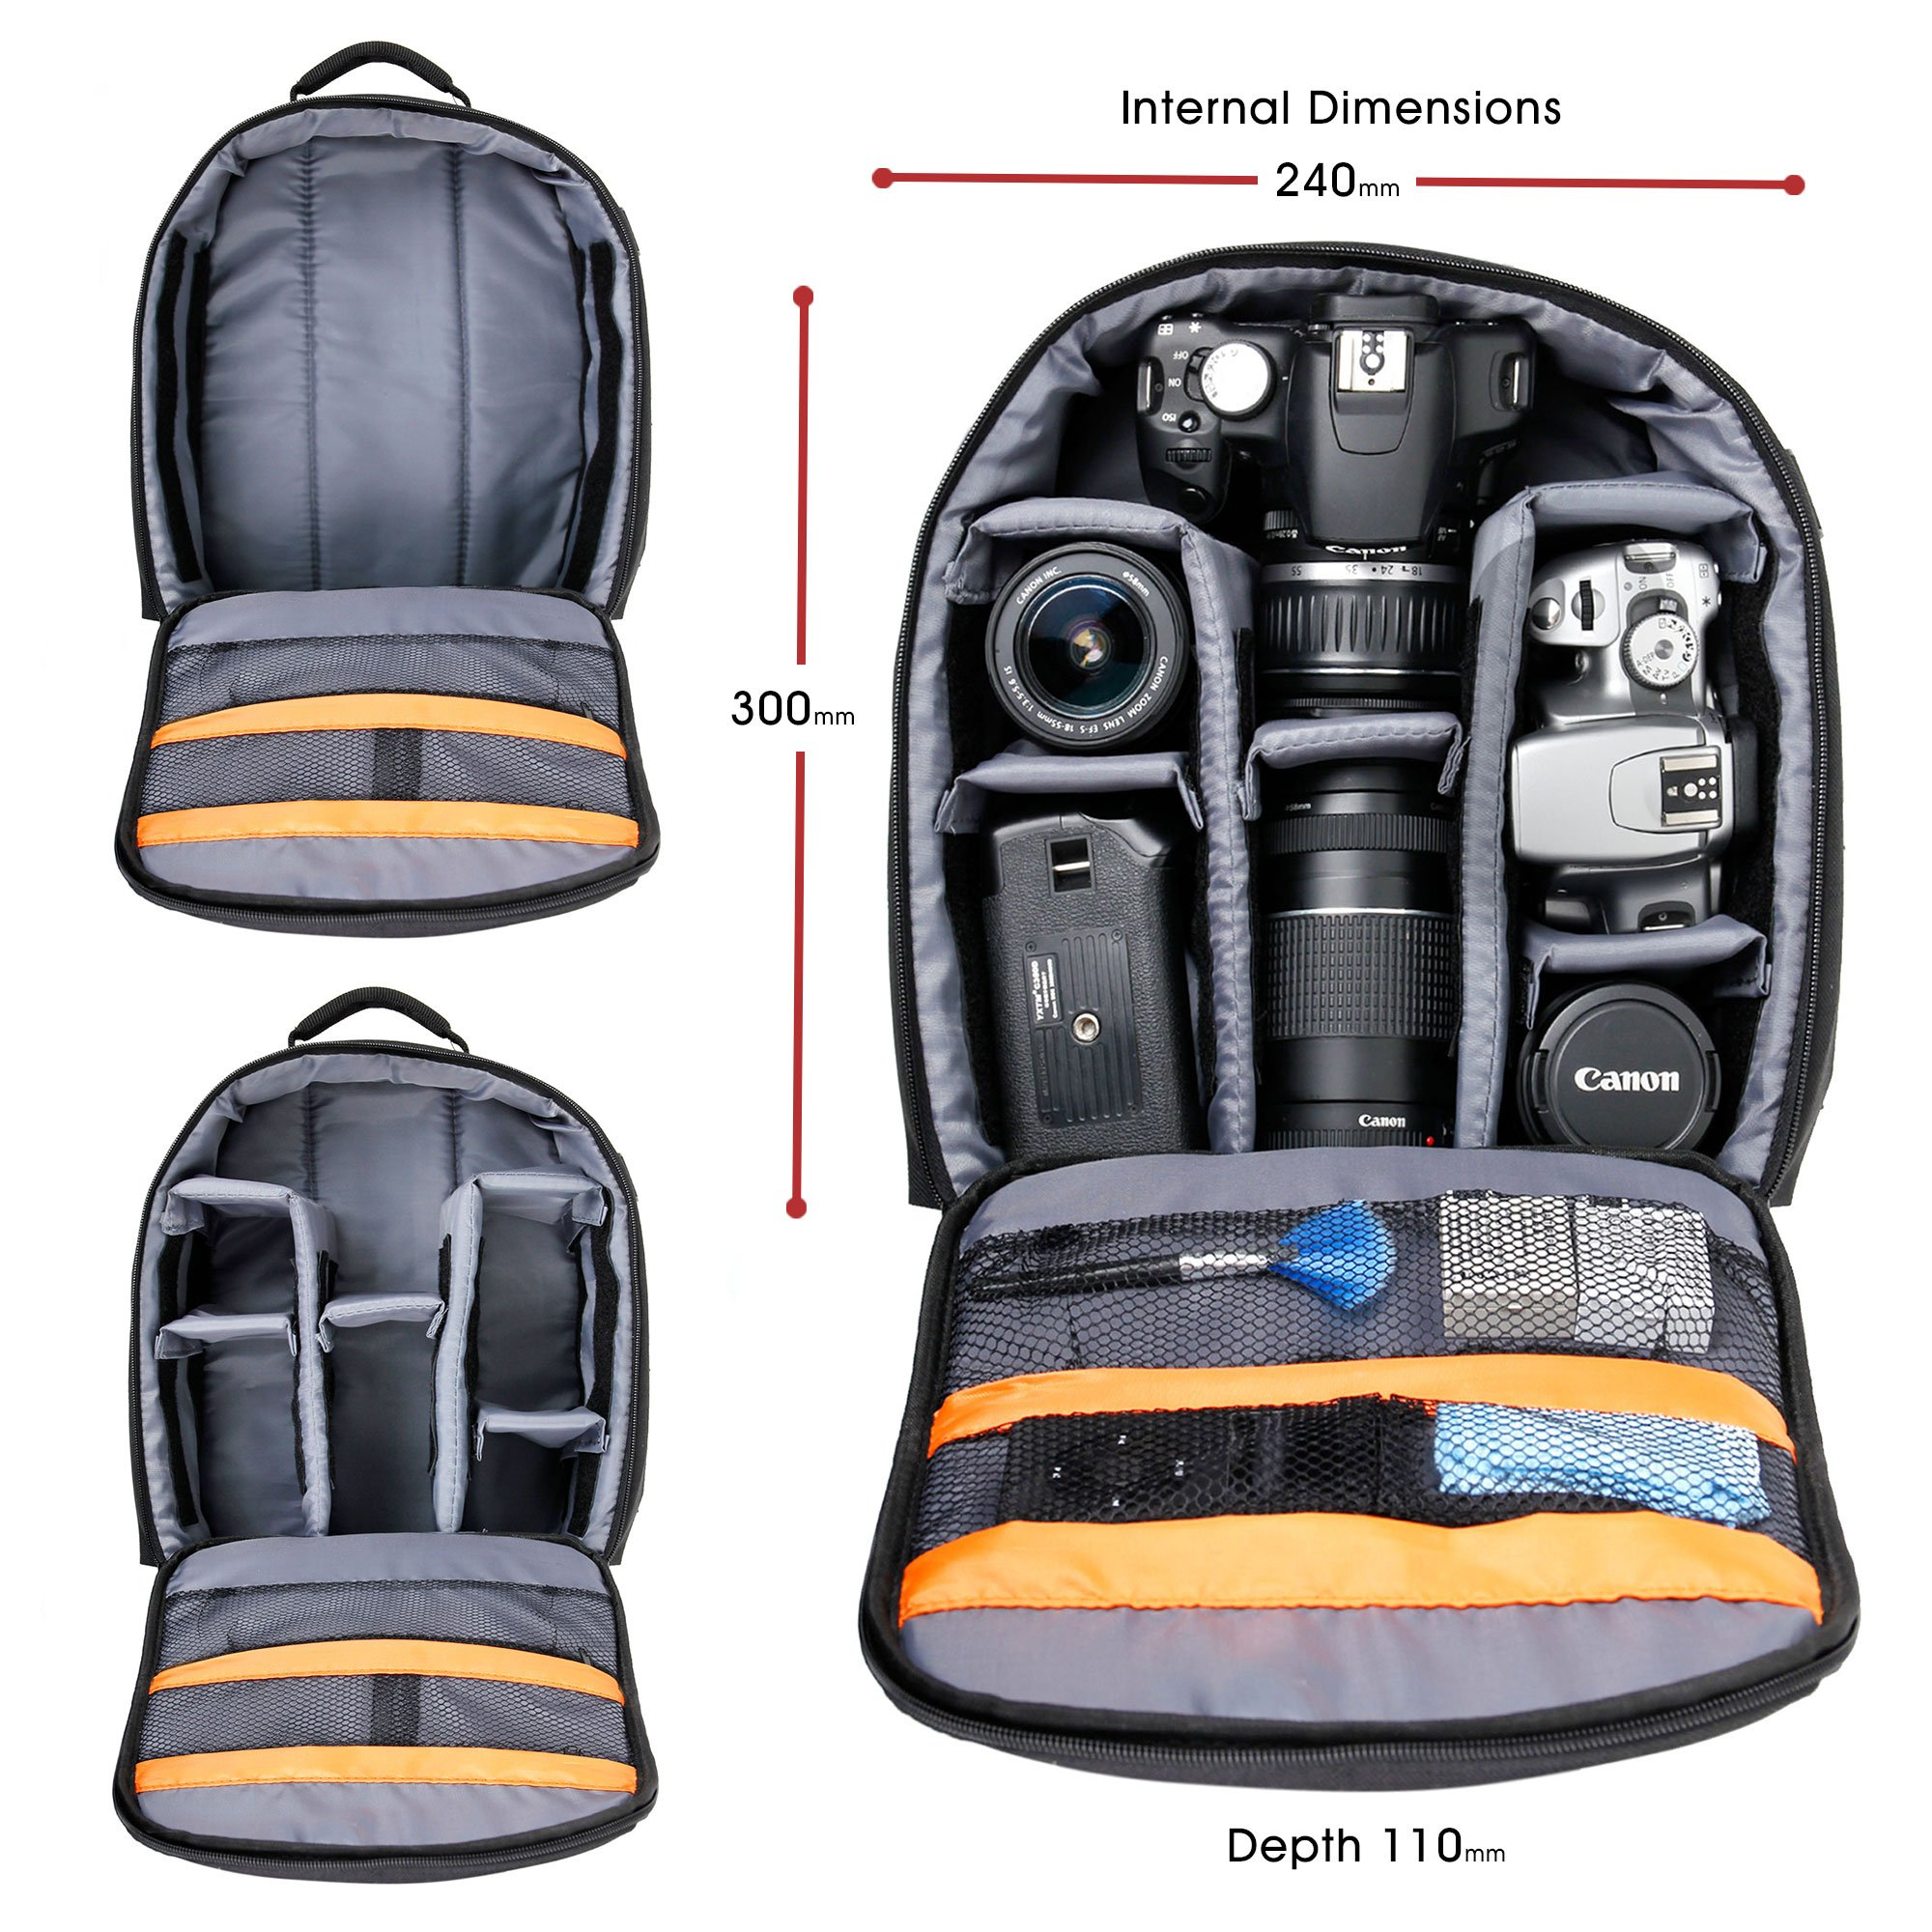 DURAGADGET Premium Quality, Water-Resistant Compact Backpack Organiser - Compatible with Sphero Ollie/Sphero Ball Robot - with Customisable Interior & Additional Raincover by DURAGADGET (Image #4)